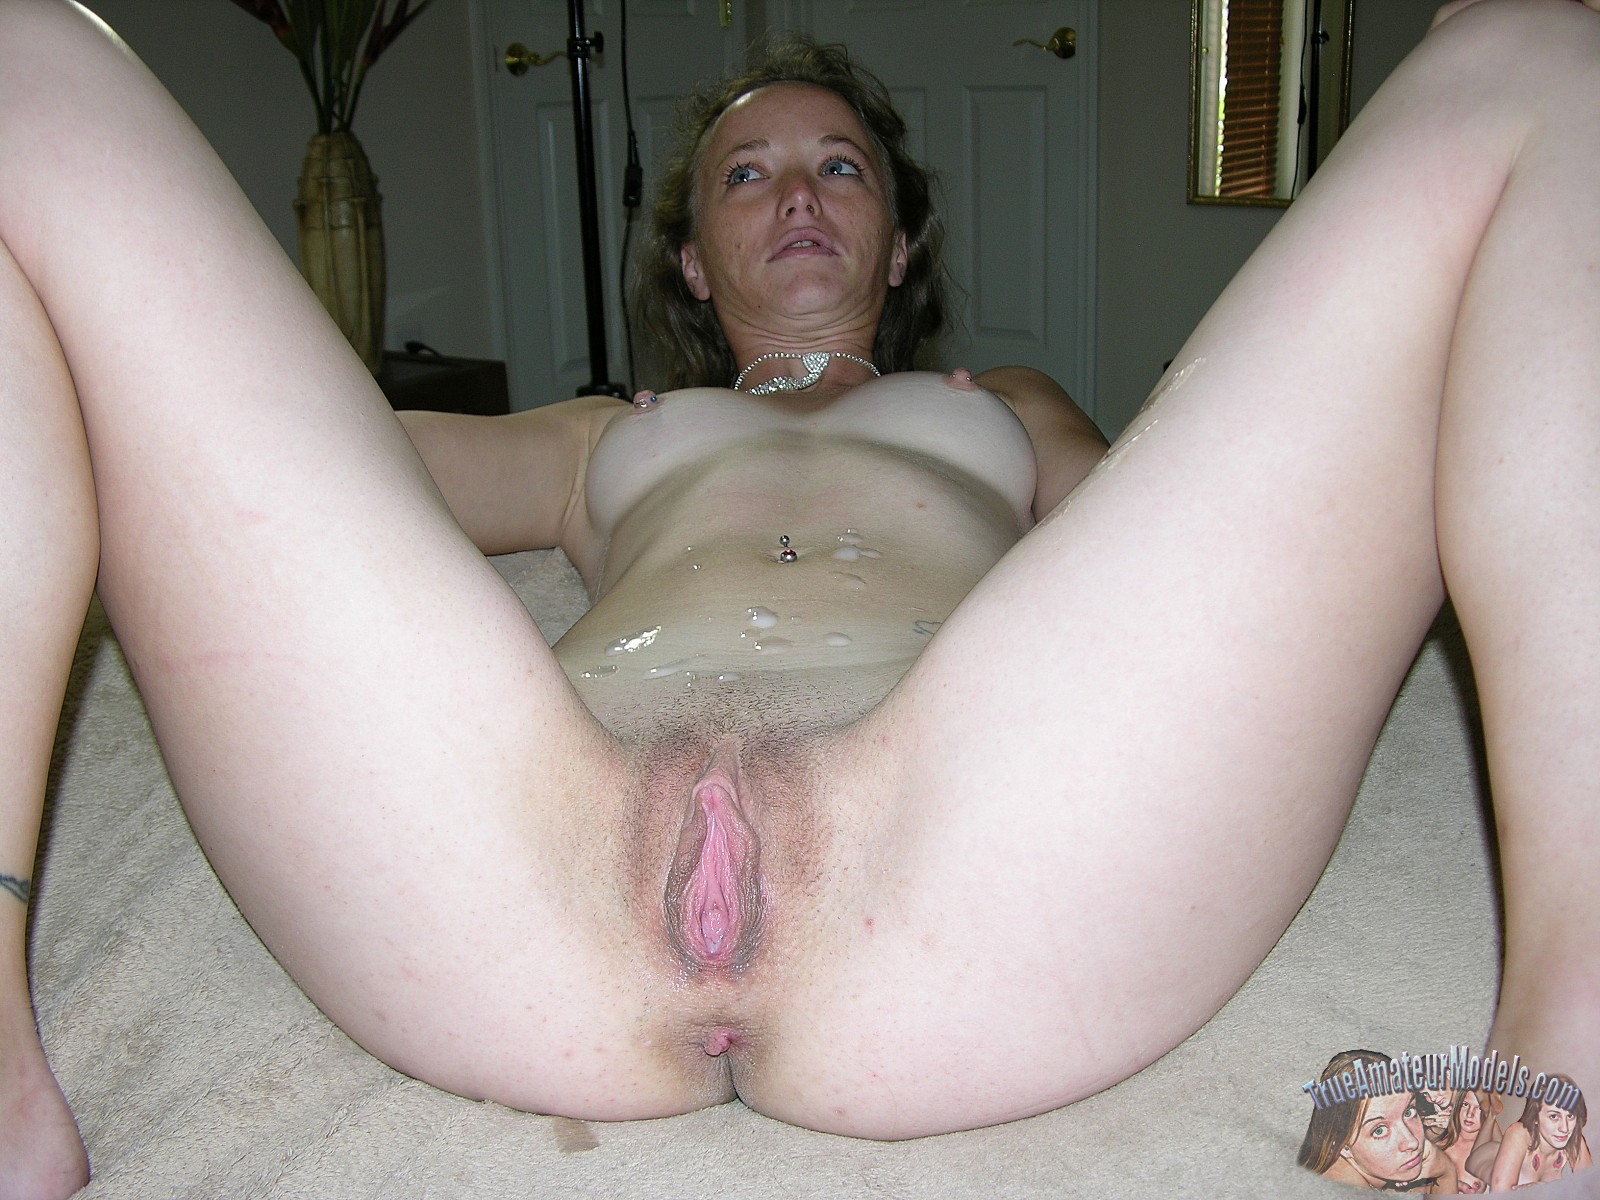 Milf from pof true freak - 3 part 4